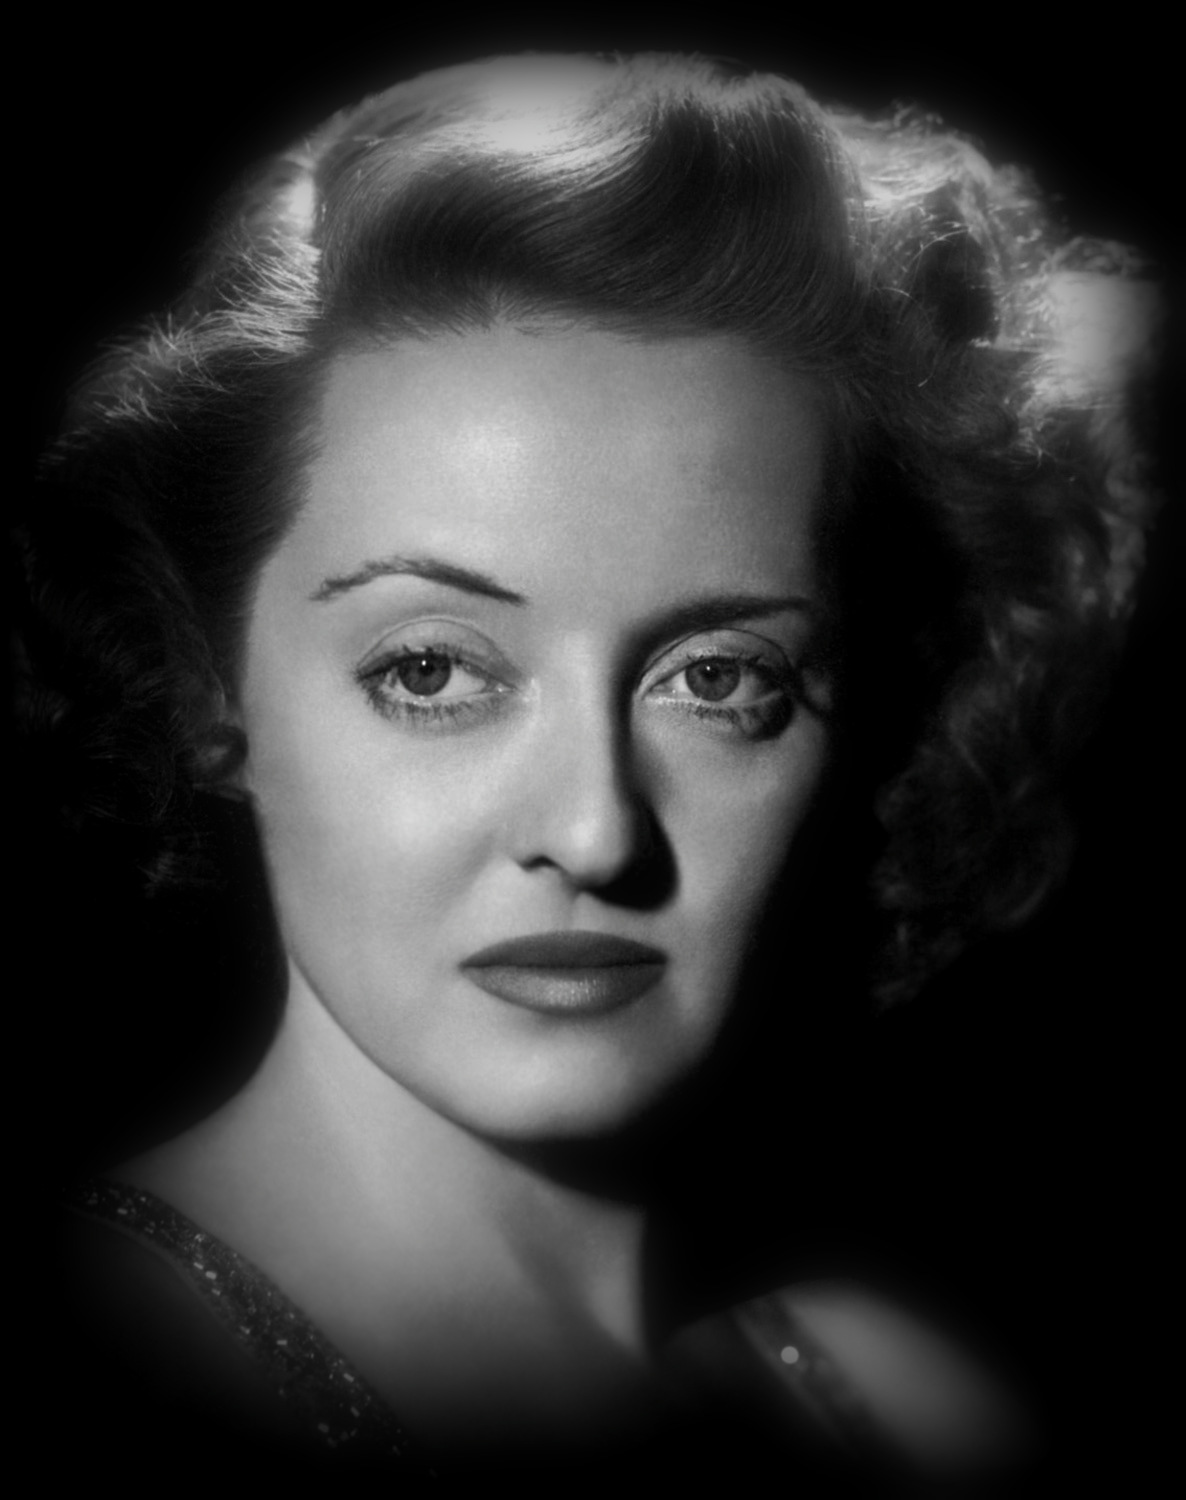 Michael Connelly Libros Guelyland: Tribute To Bette Davis...and Her Eyes